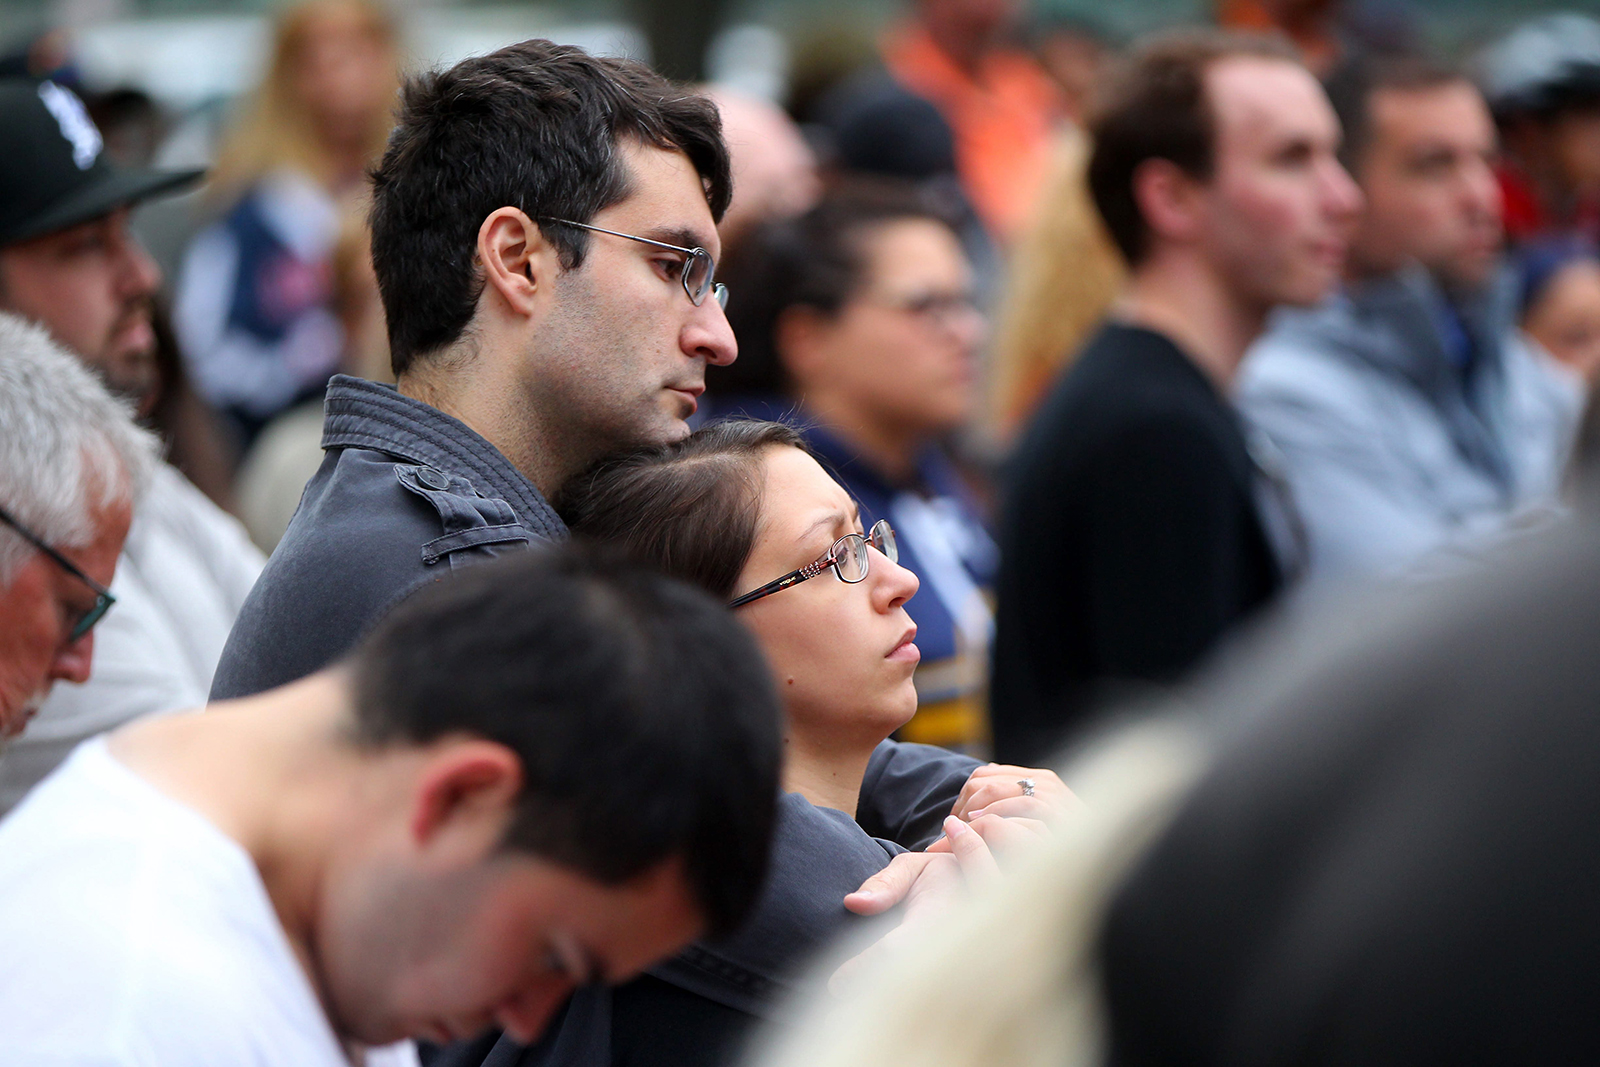 James and Shannon Poupalos listen to the speakers duirng a vigil in Niagara Square in Buffalo Monday, June 11, 2016, in support of those killed in Orlando over the weekend. (Mark Mulville/Buffalo News)